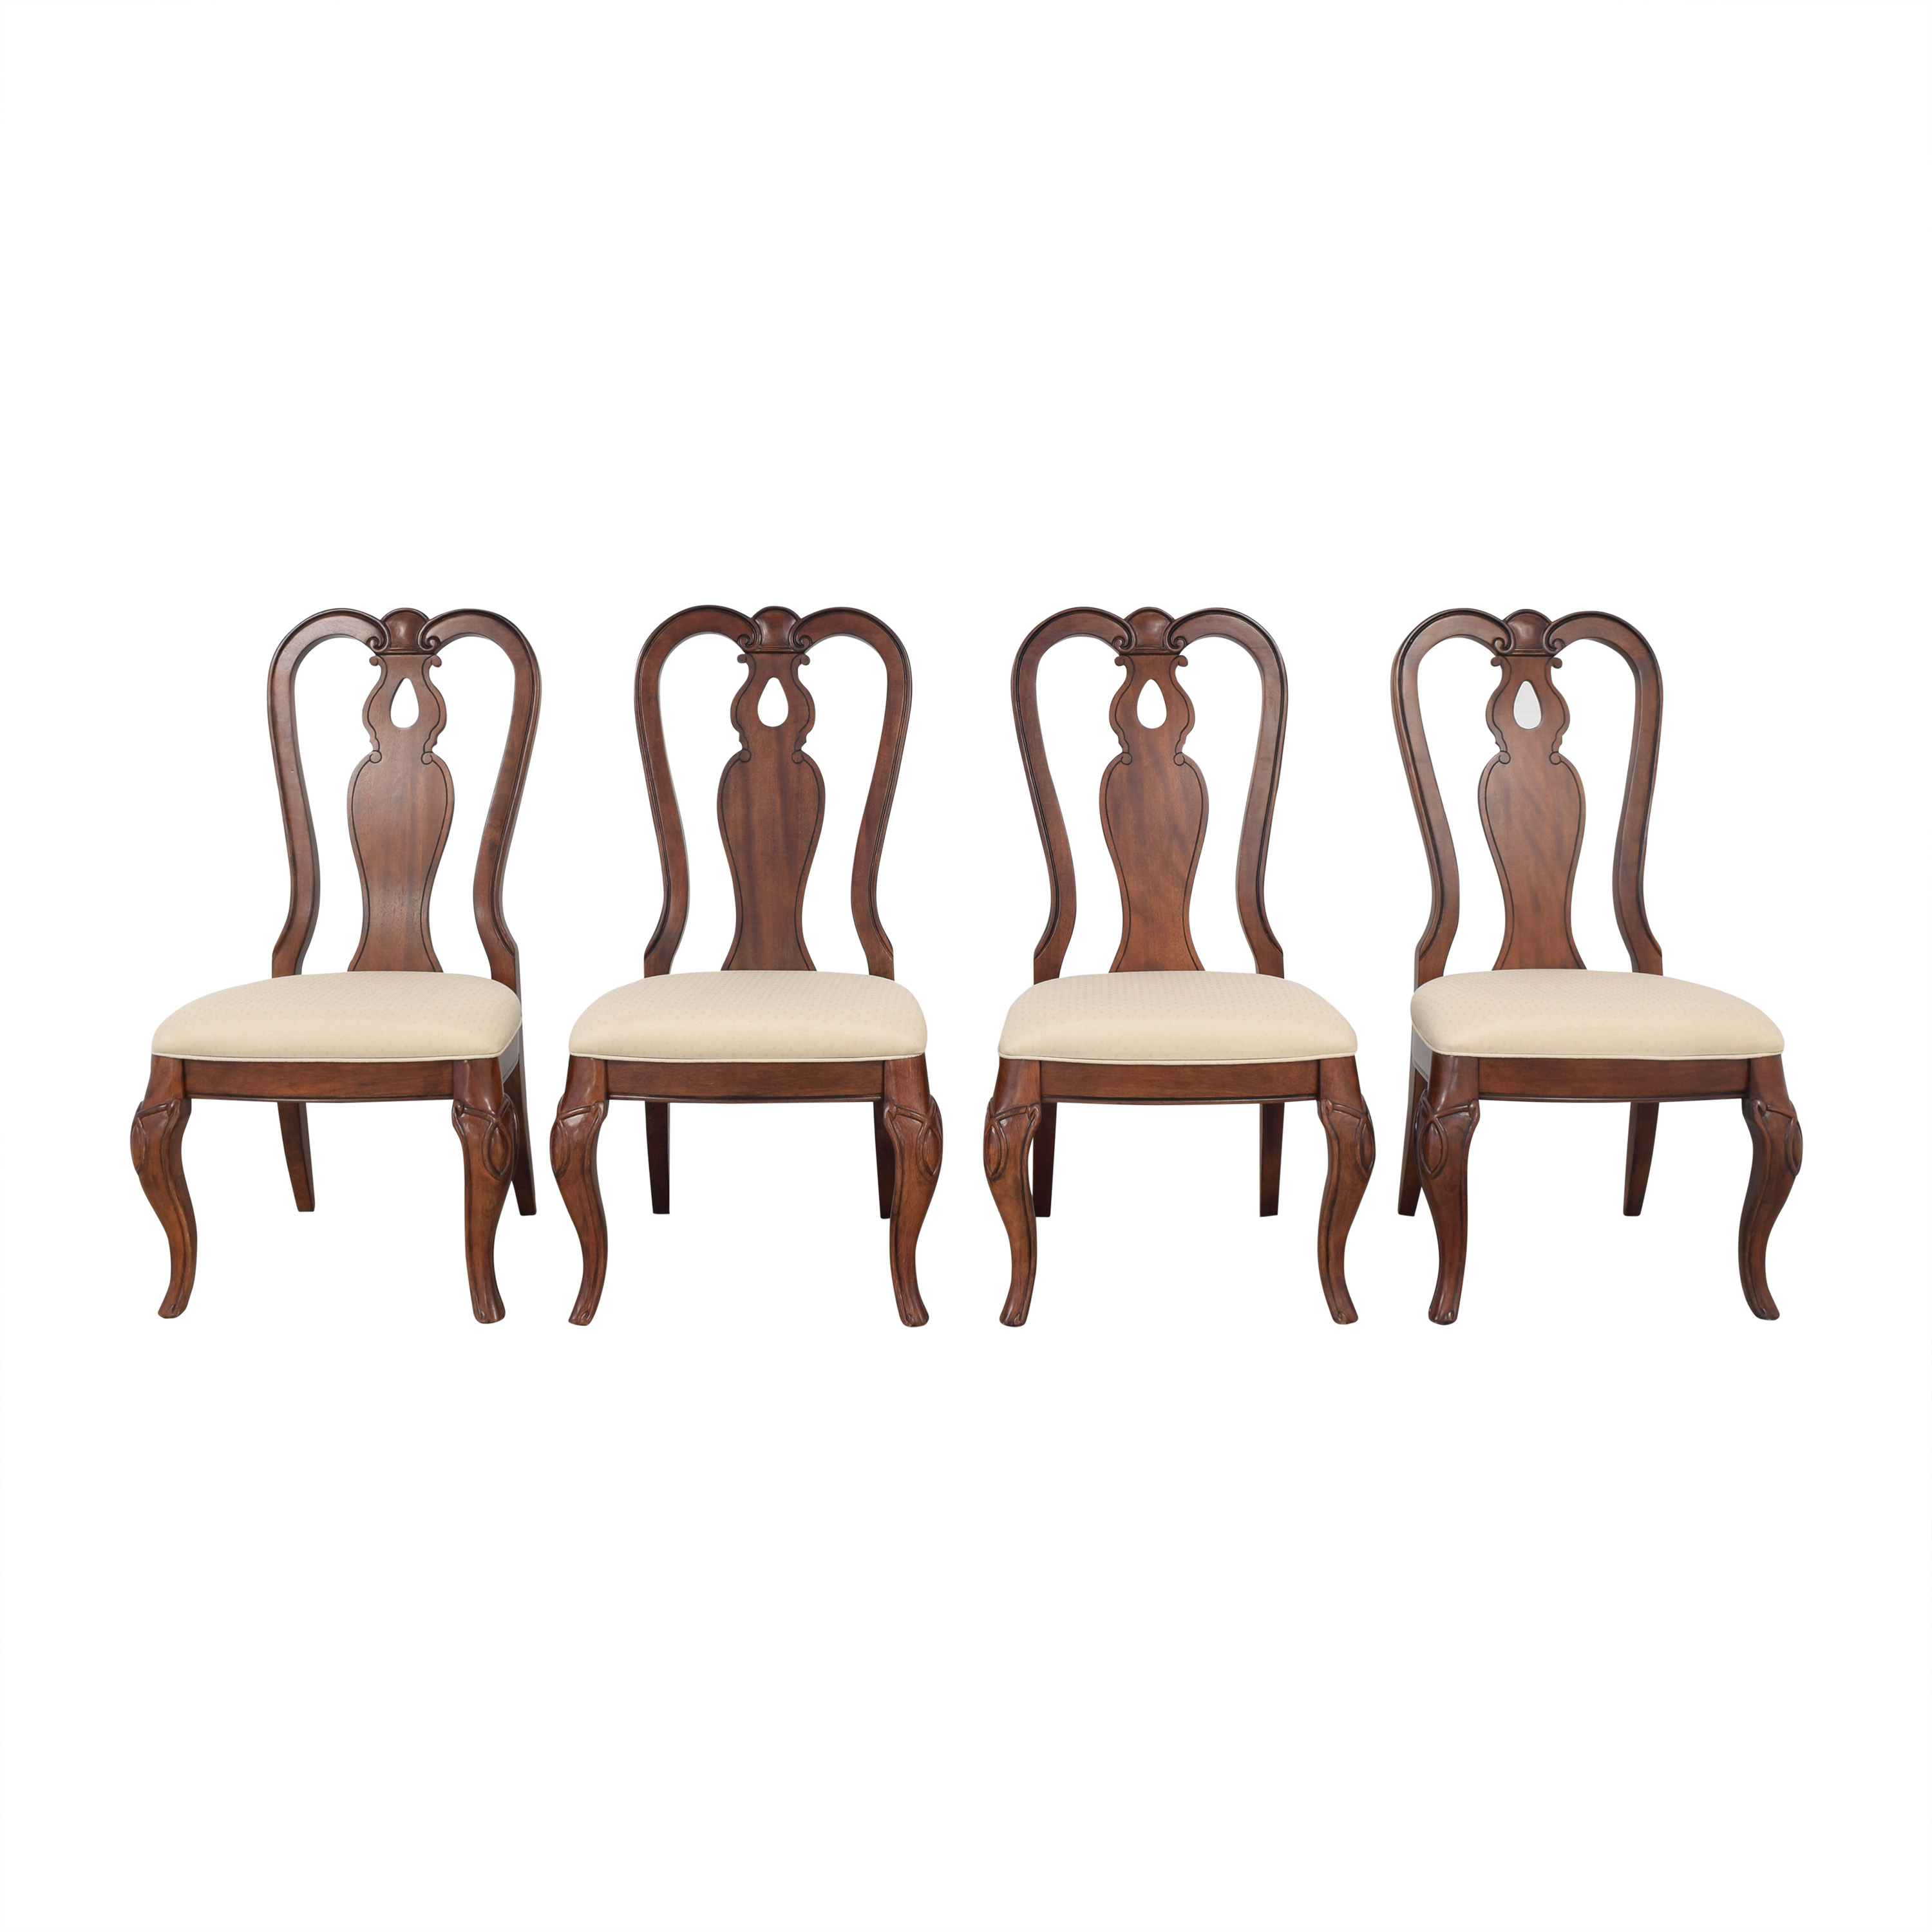 Macy's Macys Bordeaux Dining Chairs coupon